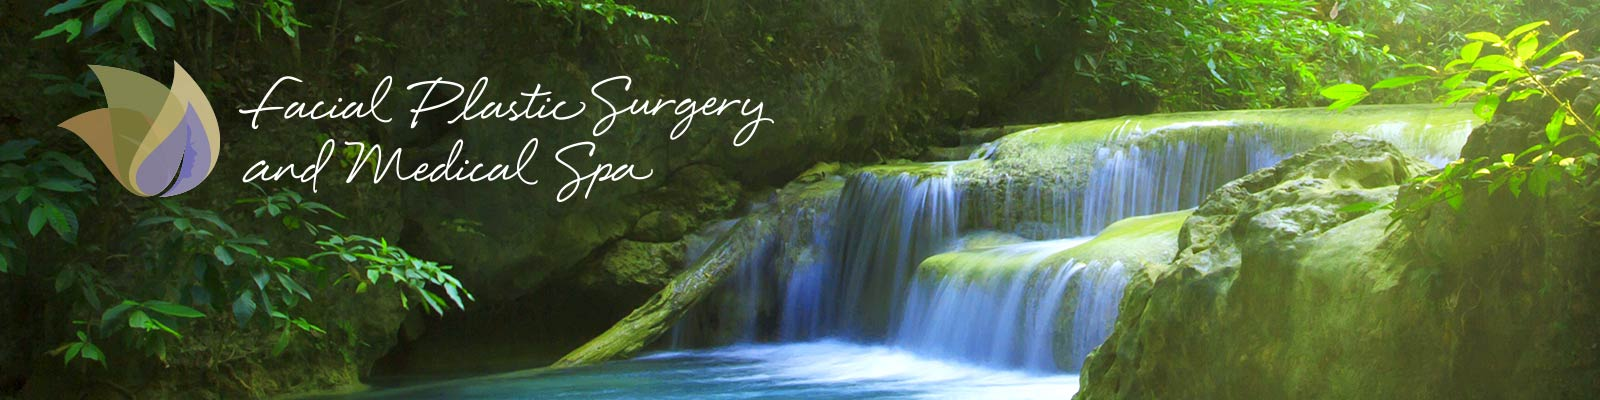 Billings Clinic Facial Plastic Surgery & Medical Spa